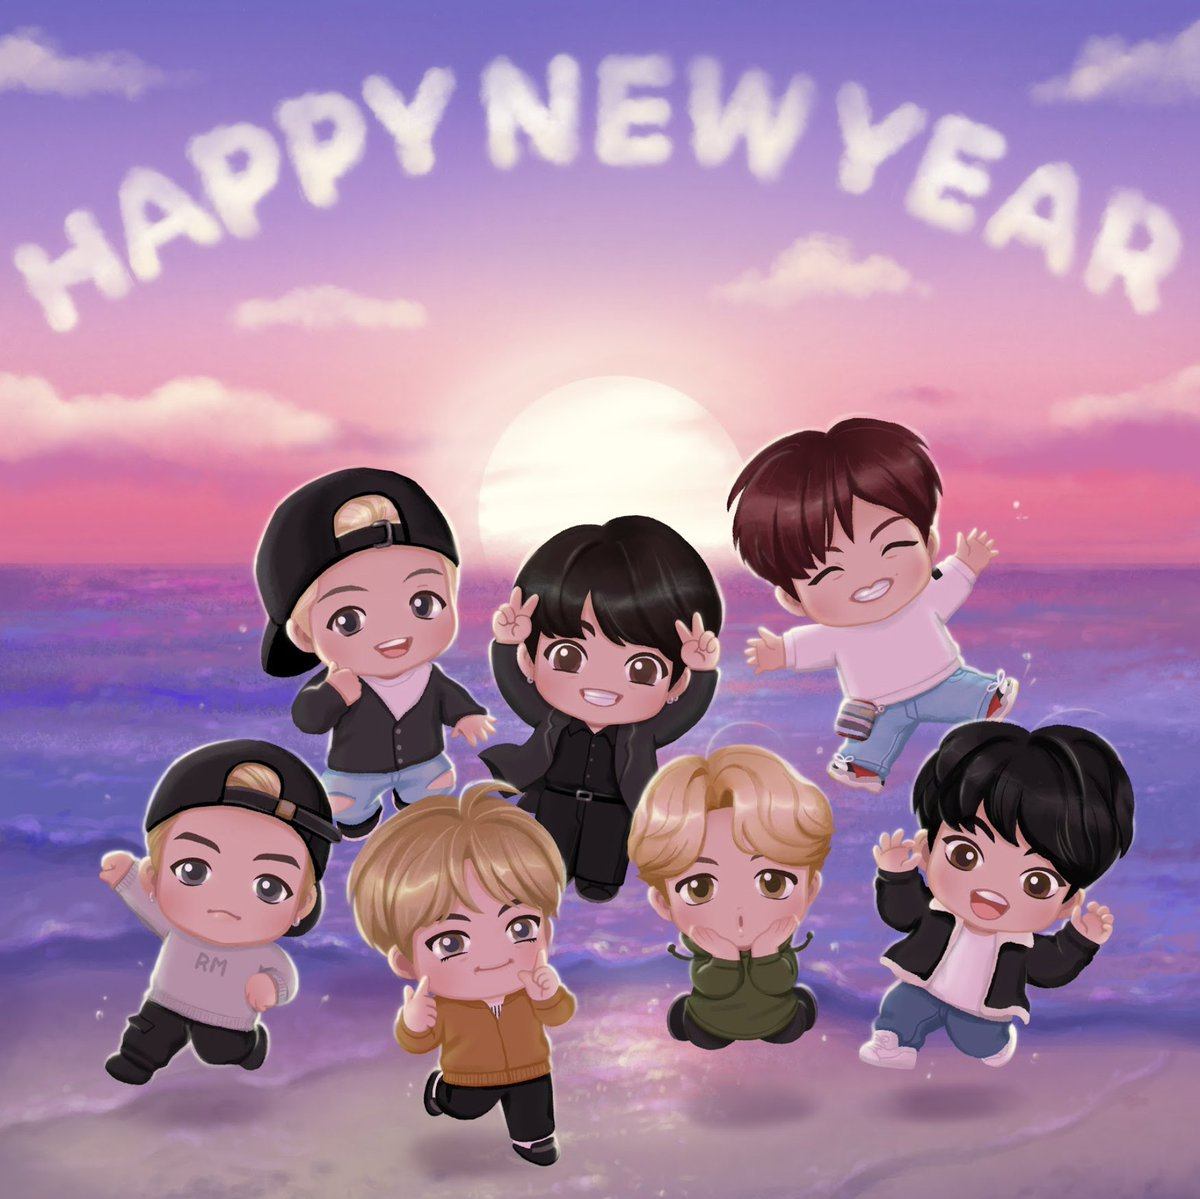 [#Behind_the_Magic_Door]  We know. Our 2021 will be brighter than ever!  #TinyTAN #Happy_New_Year